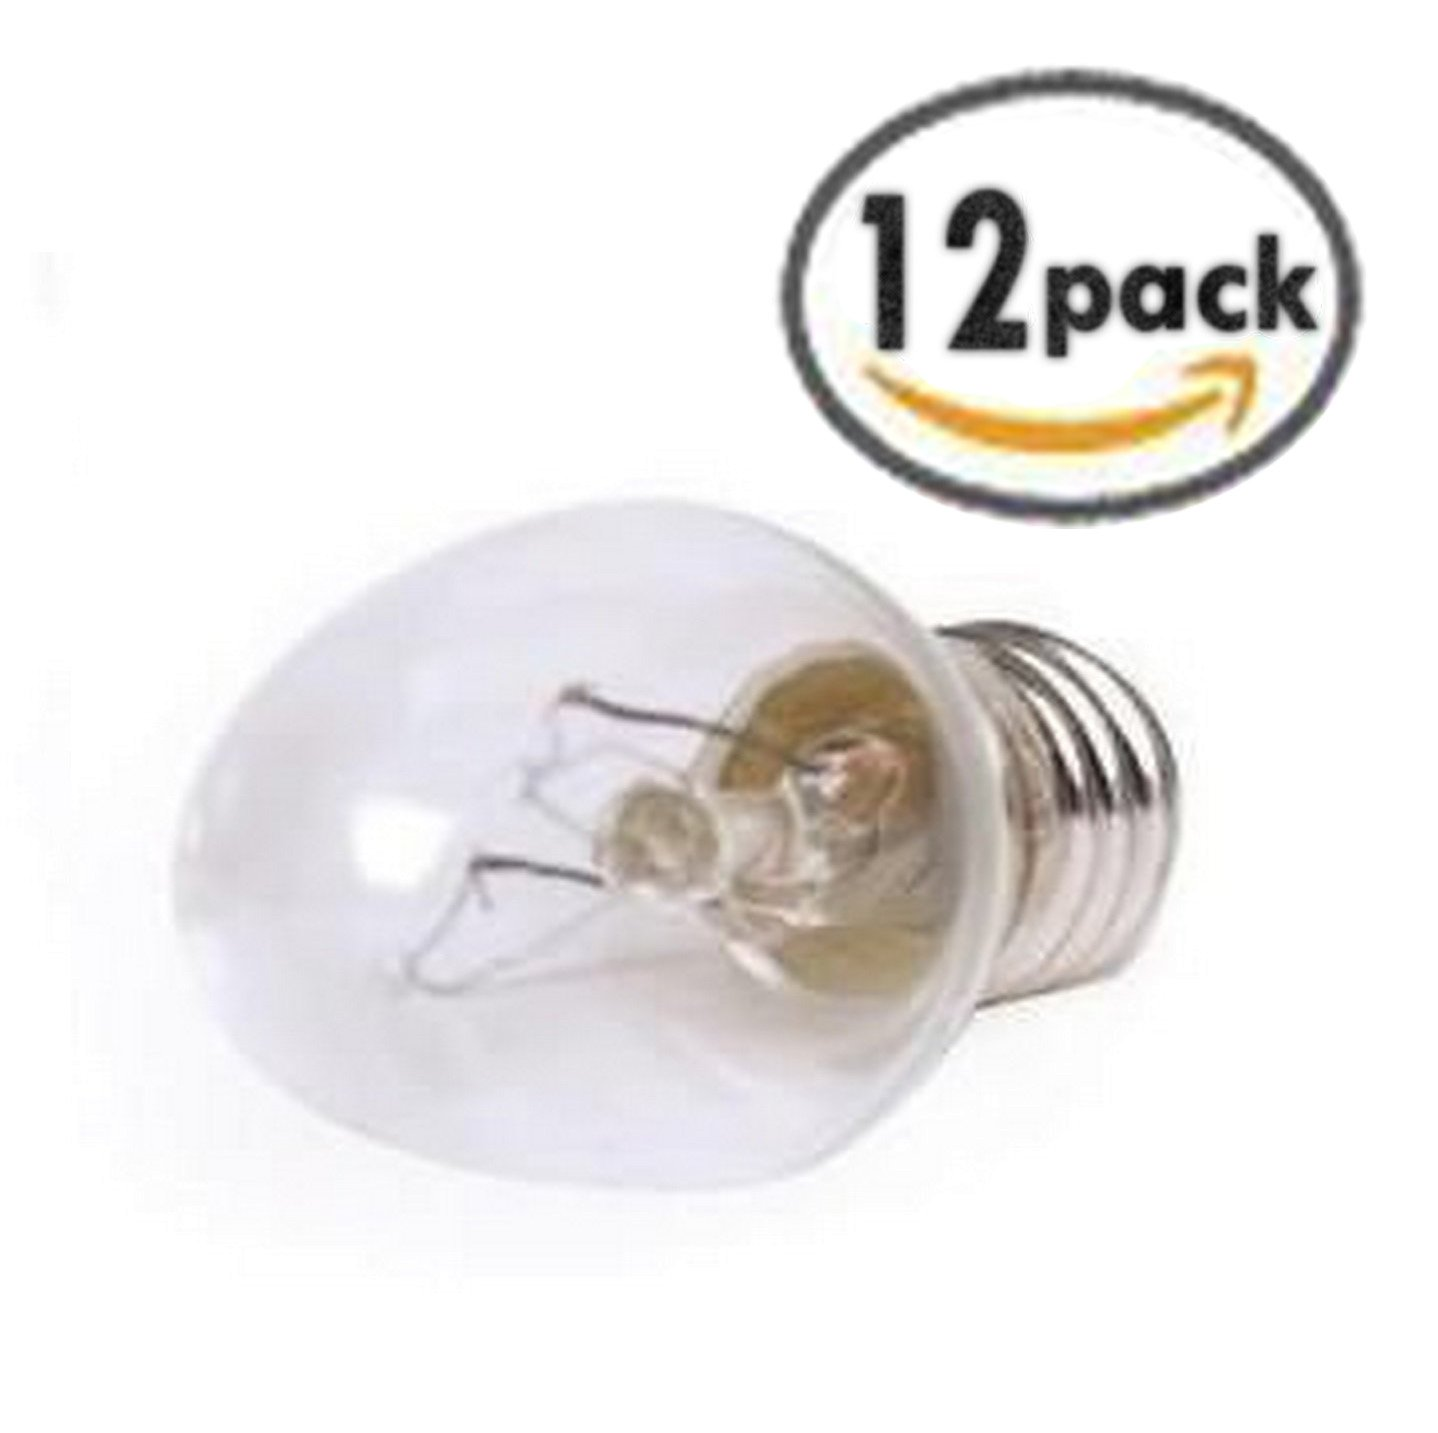 15 Watt Night Light Bulbs: 12 Pack, 15 watt Scentsy bulb, Replacements for Authentic Scentsy Plug-In  and Nightlight Warmer, Wax Melts Scented Candle Wax, 15W 120 Volt - -  Amazon.com,Lighting